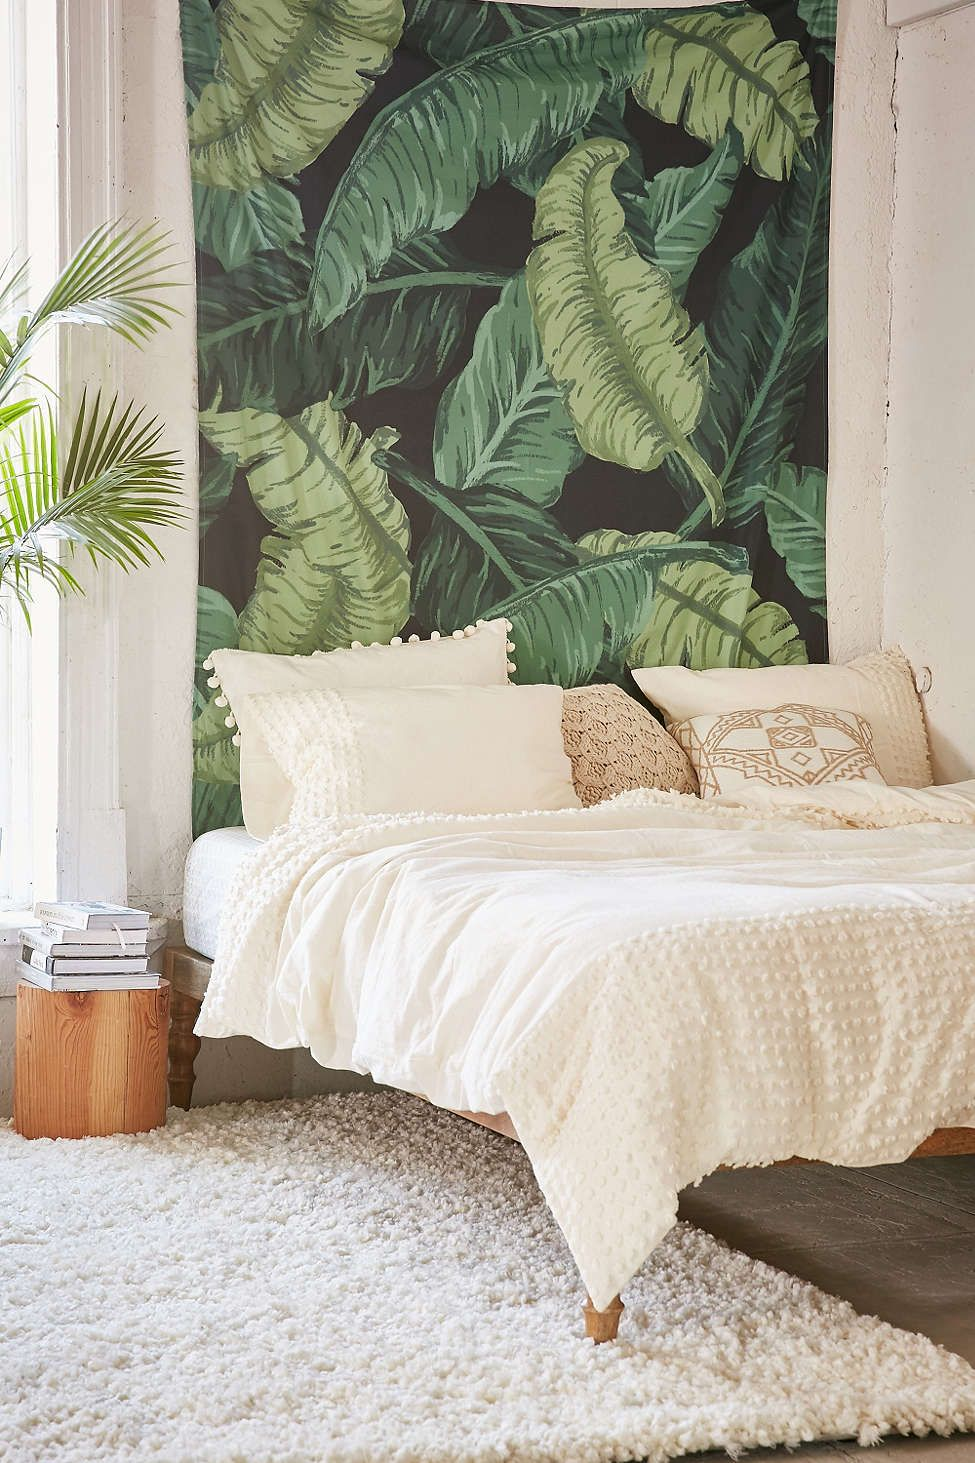 Urban outfitters bedroom tapestry - Banana Leaf Tapestry